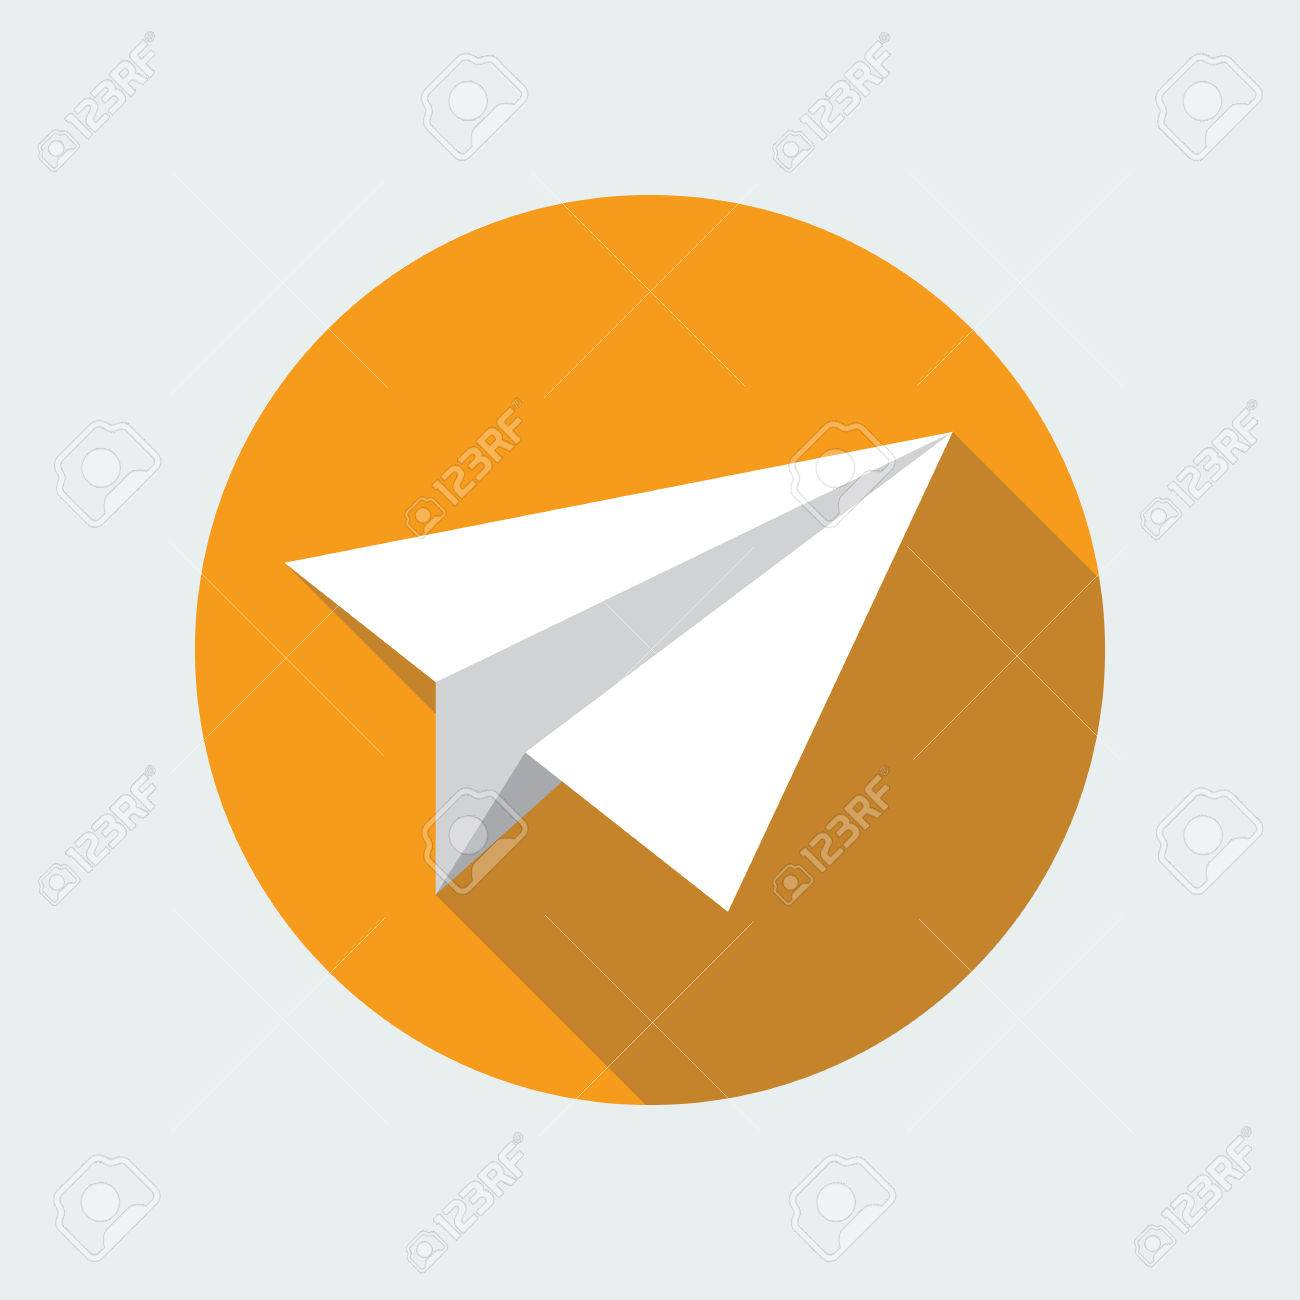 Paper Plane Navigational Flat Icon Sign Origami Airplane Symbol Vector Of A